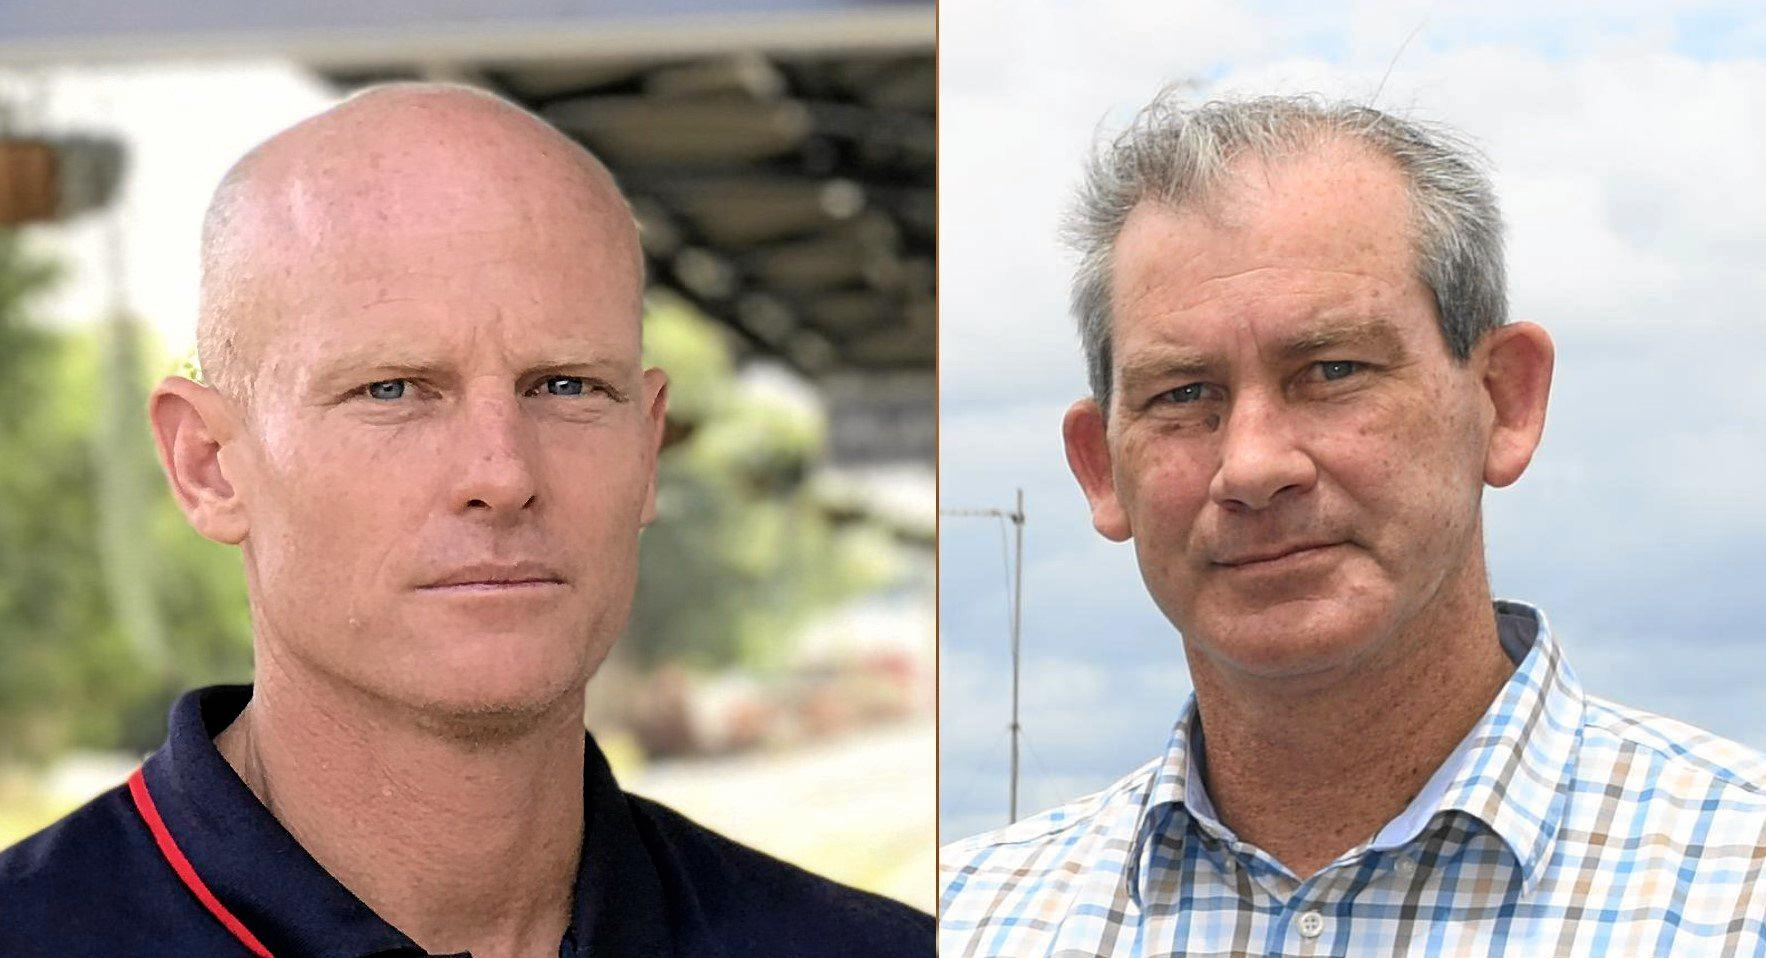 Councillor Glen Hartwig is challenging Mayor Mick Curran at the next election, though Cr Curran has not indicated yet whether he will run or not.